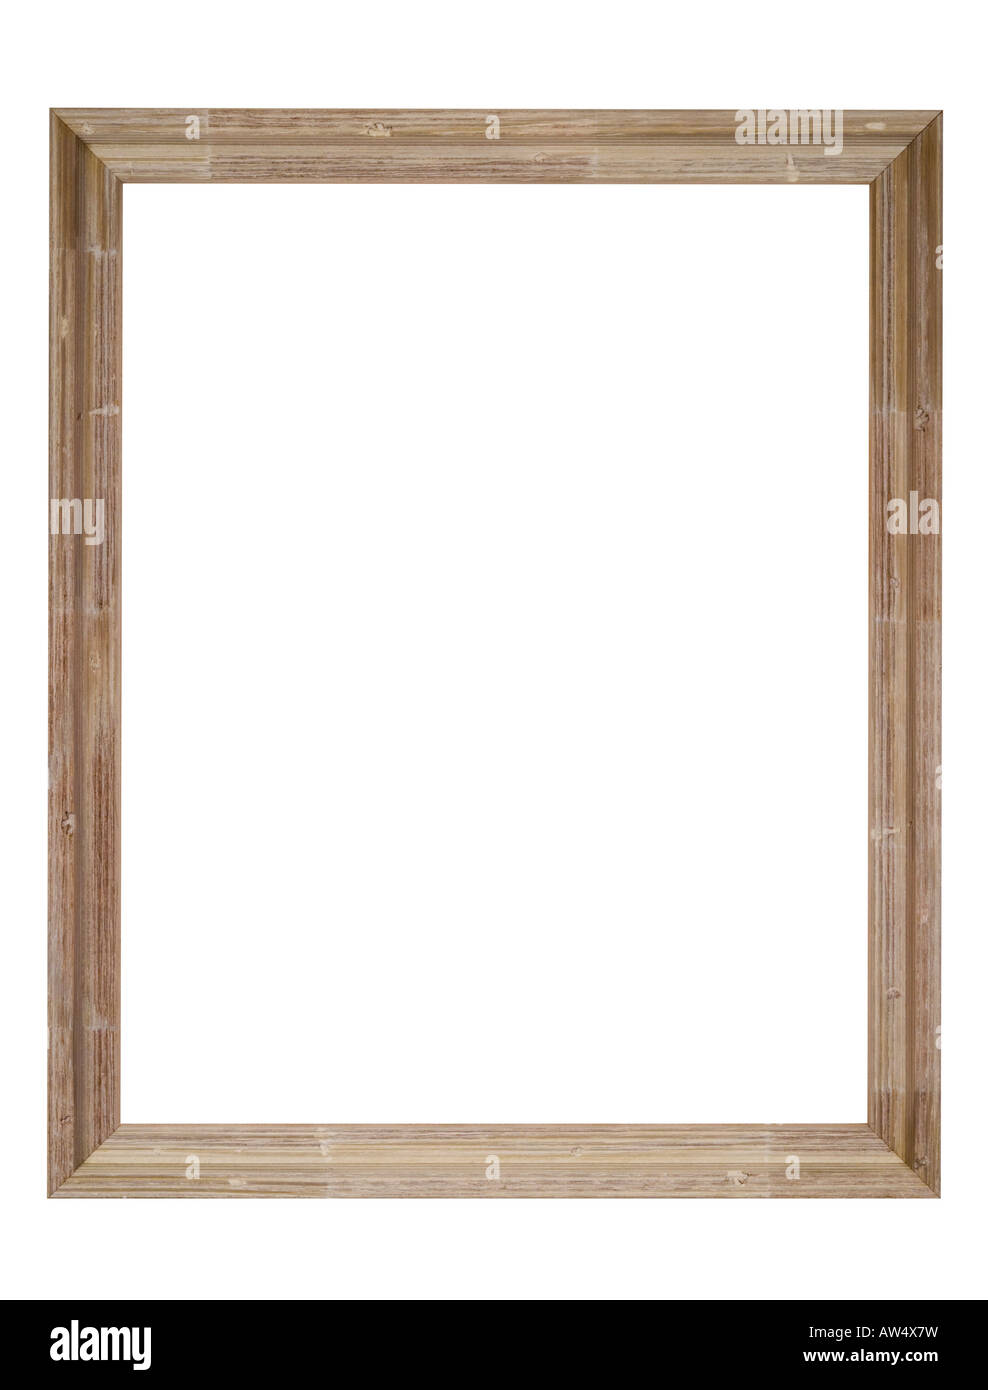 Picture Frame In Light Brown Wood Distressed Wood Grain Shabby And